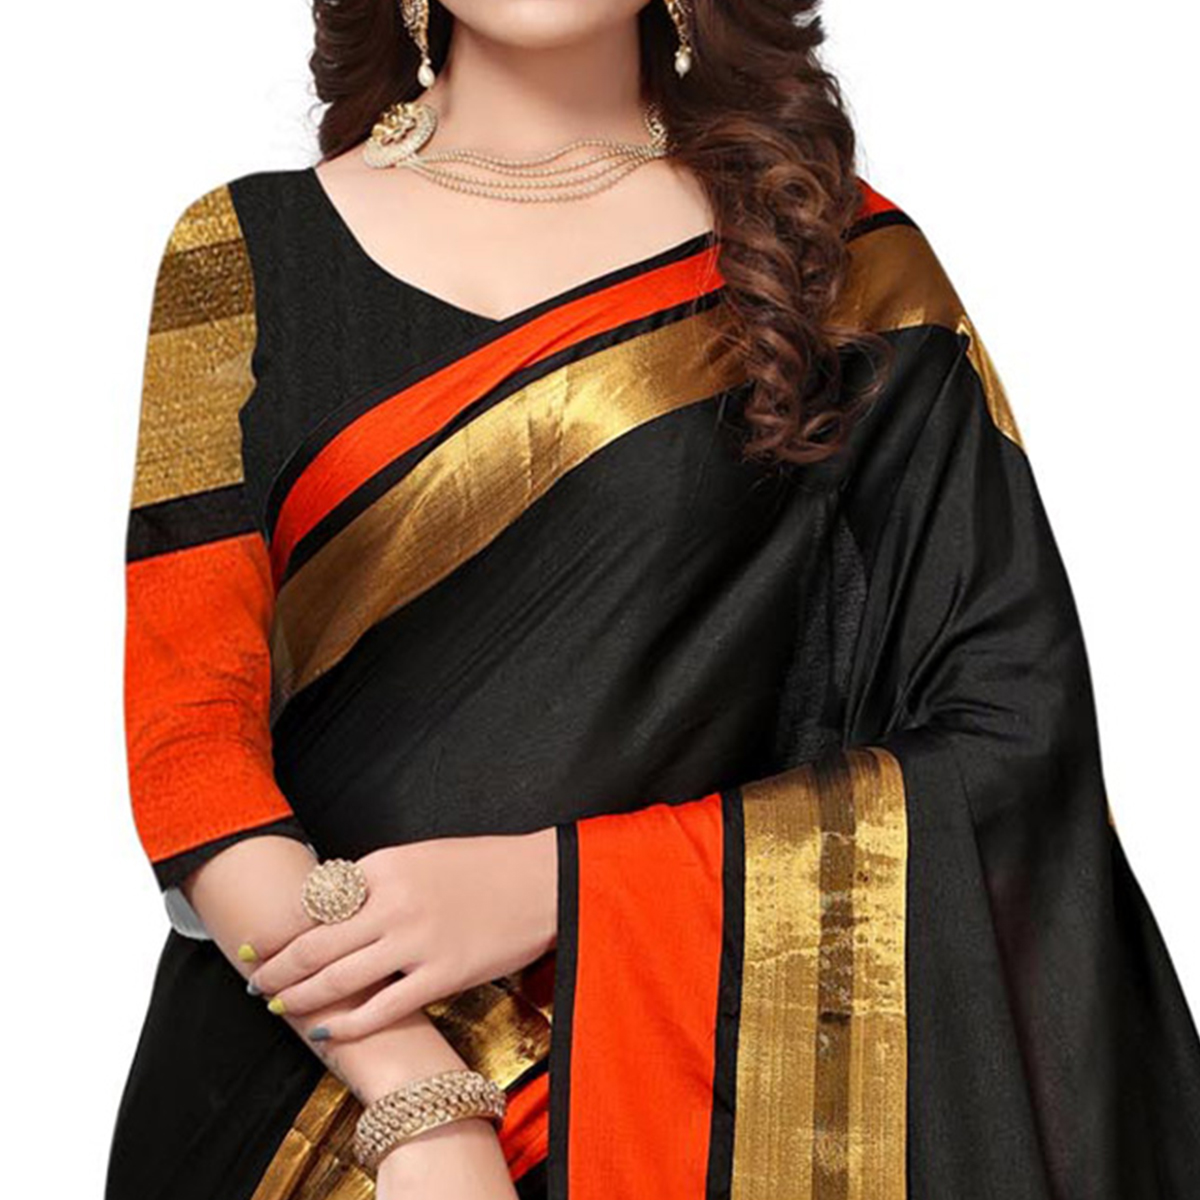 Mesmerising Black Colored Festive Wear Cotton Silk Saree